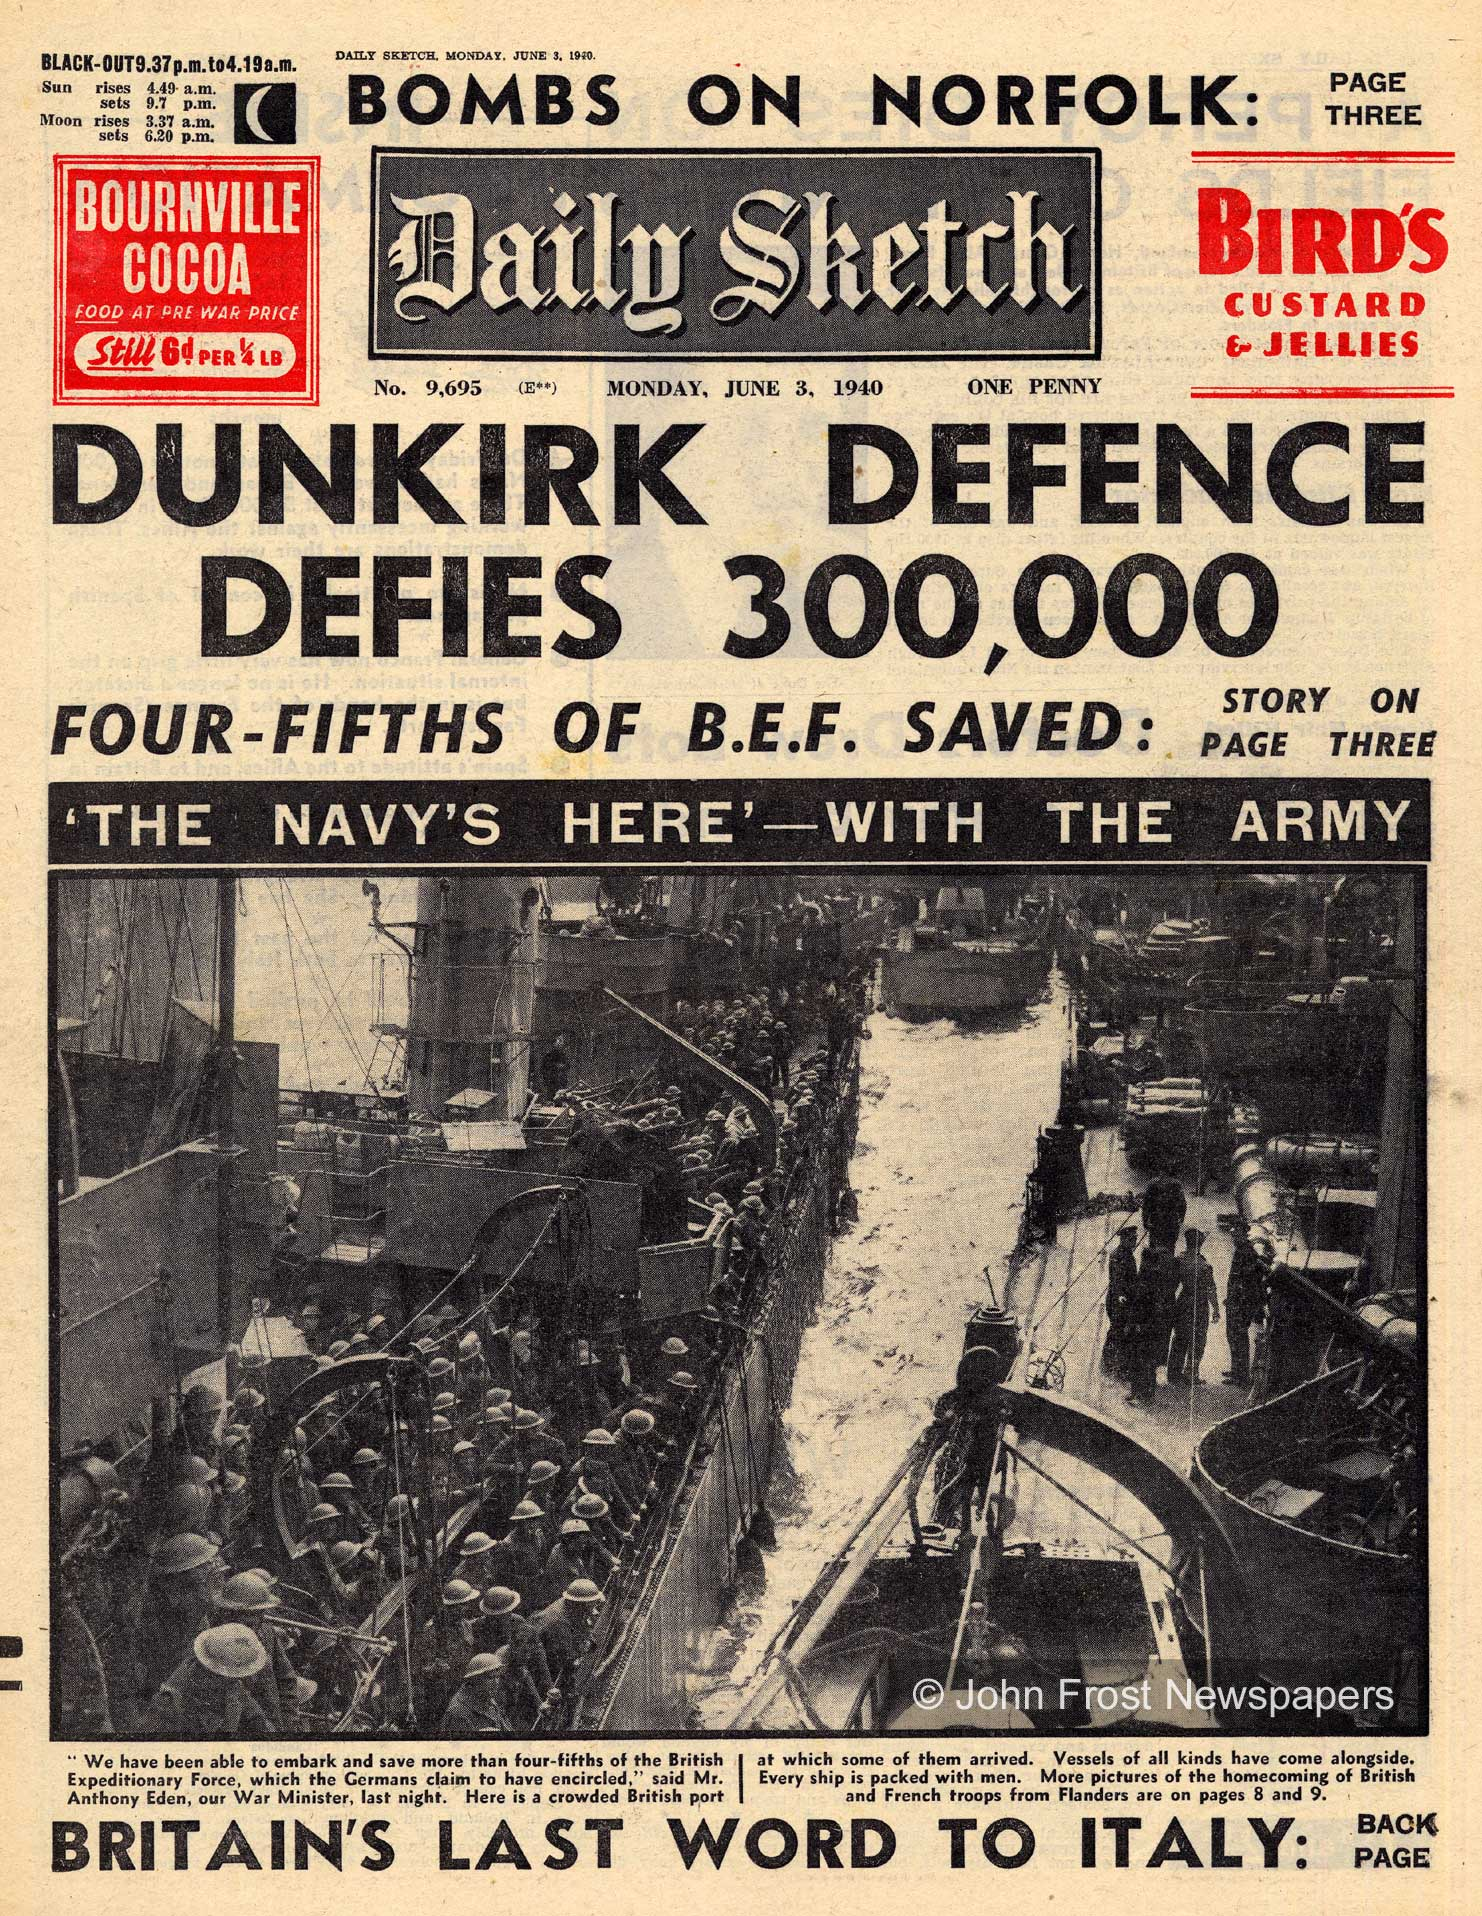 http://www.bl.uk/learning/timeline/external/newsdunkirk-tl.jpg